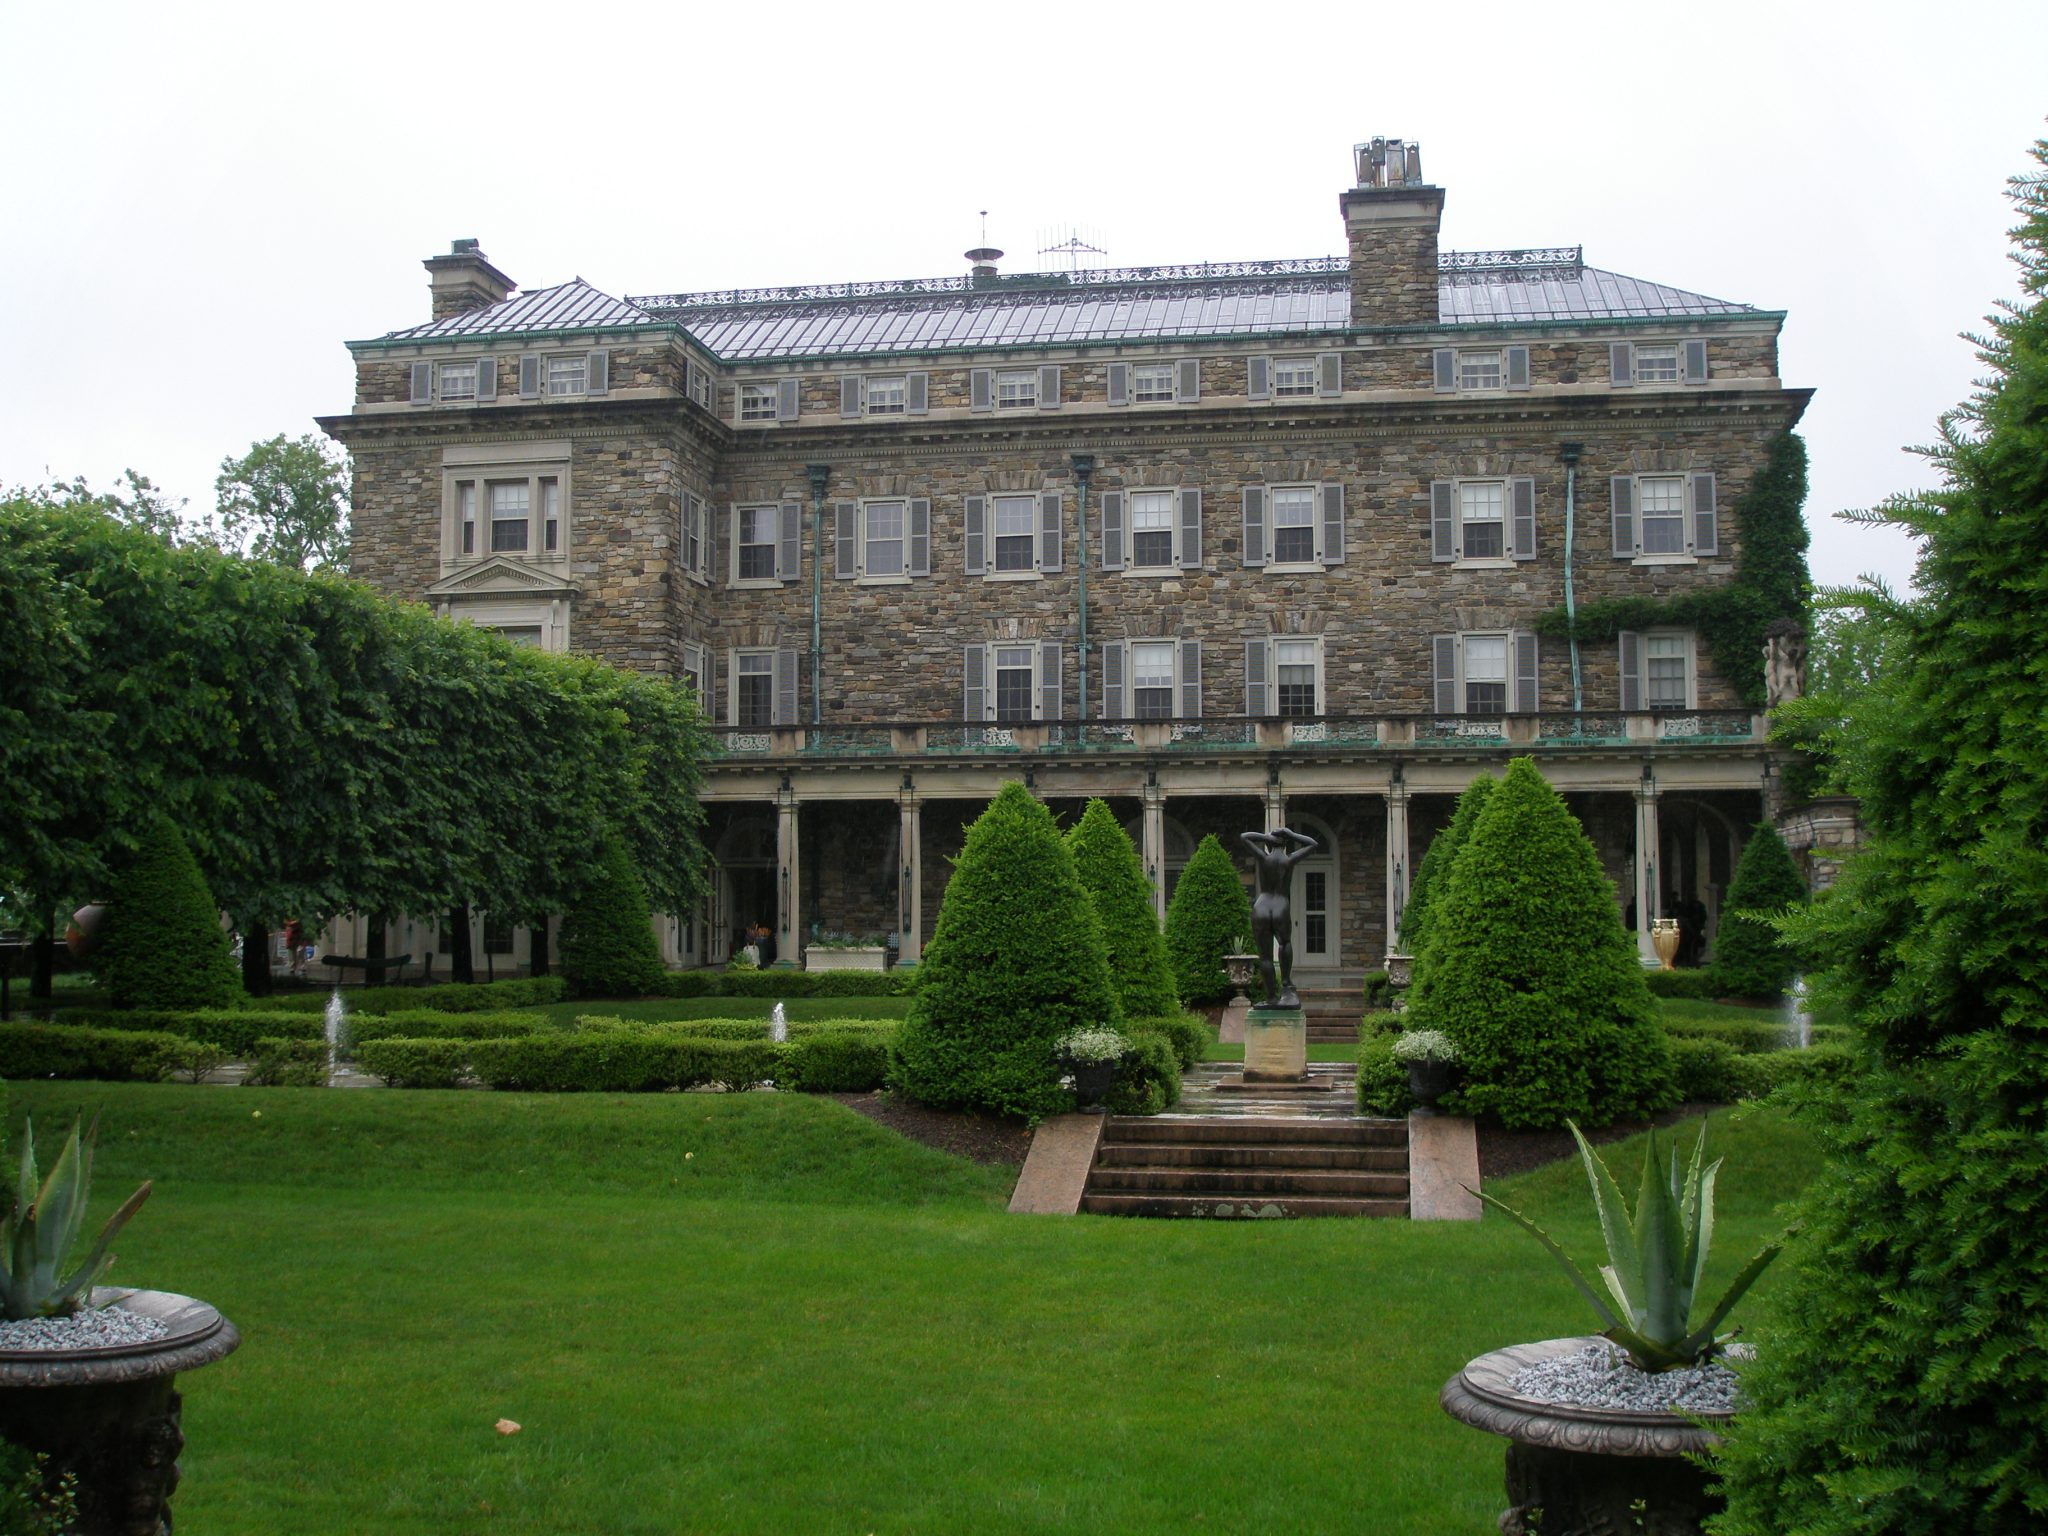 A view of the Main House, from the Inner Garden